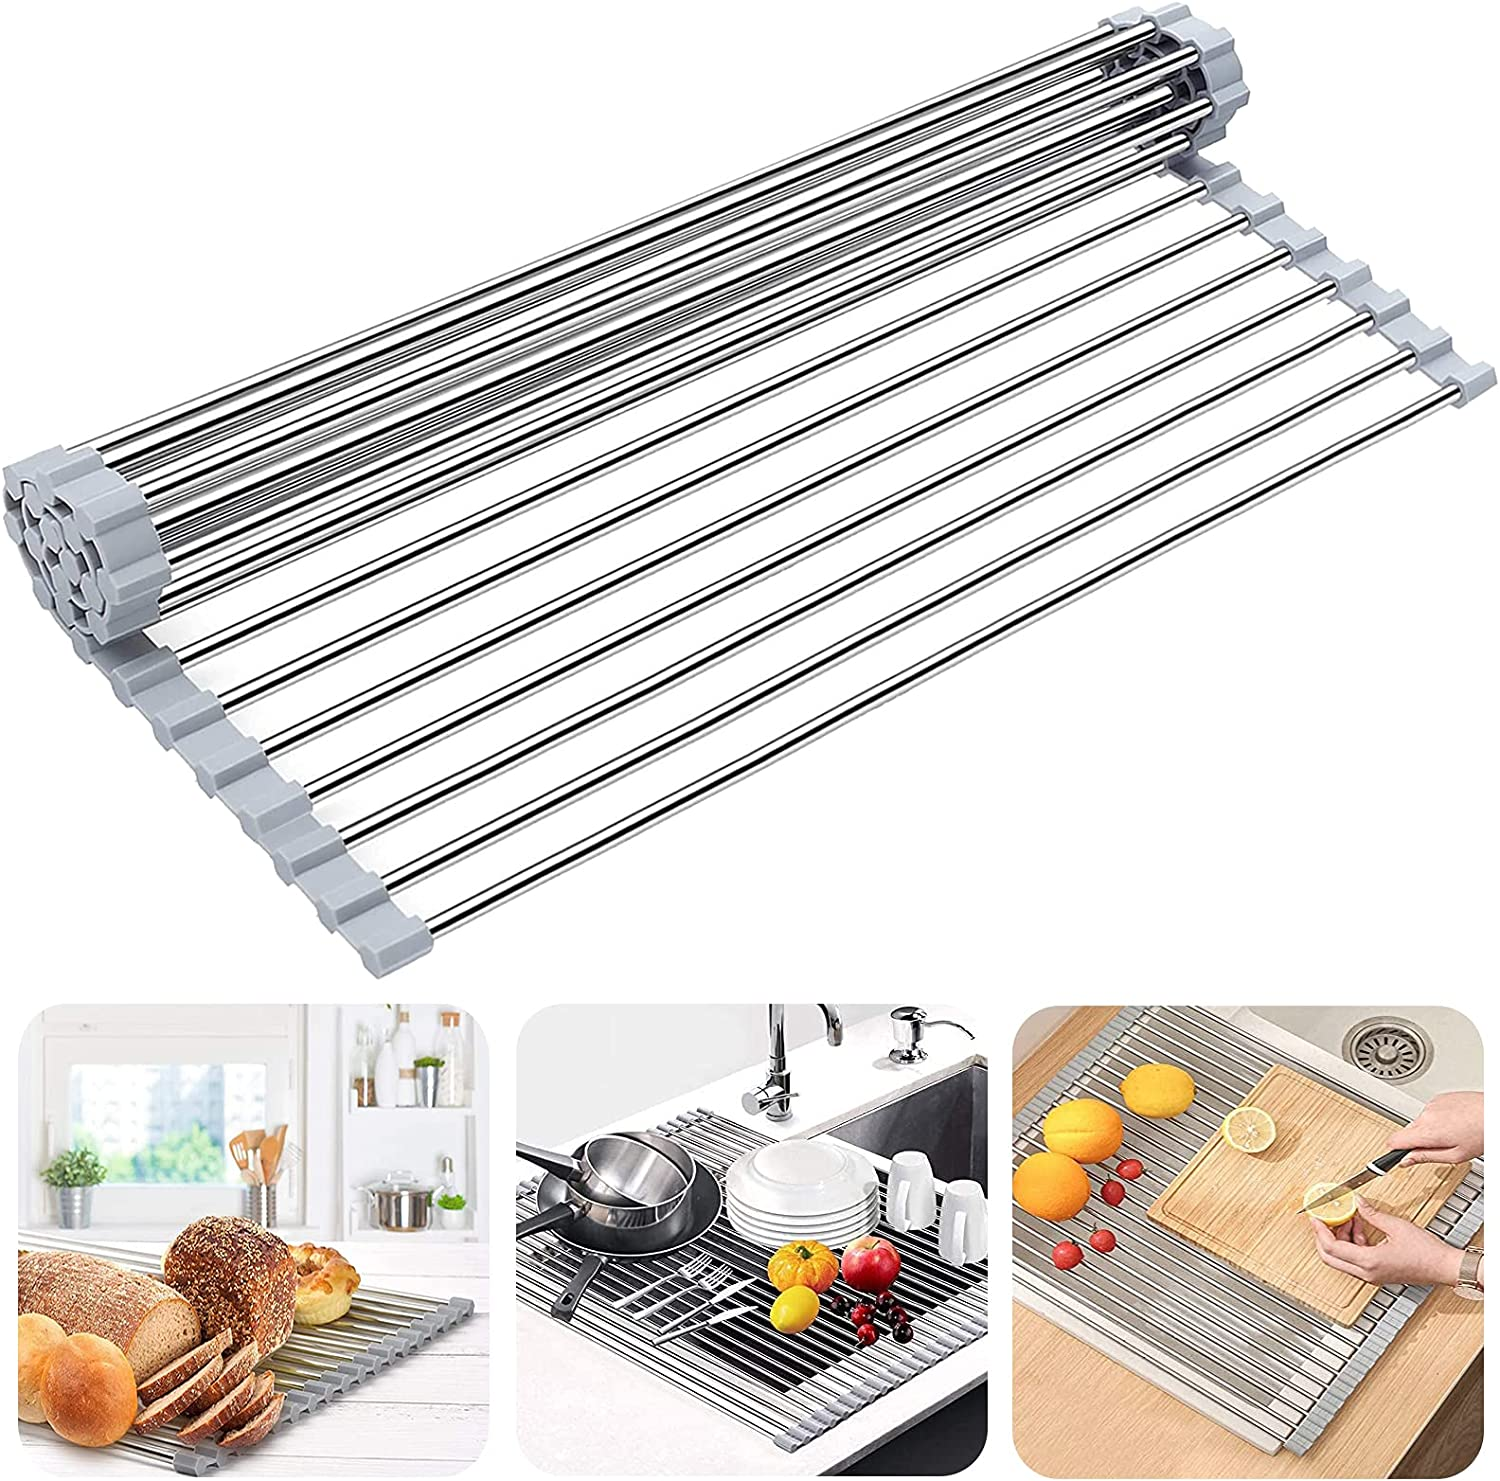 Over Max 52% OFF The Sink Dish Selling and selling Drying Rack up Roll Drain Booreina